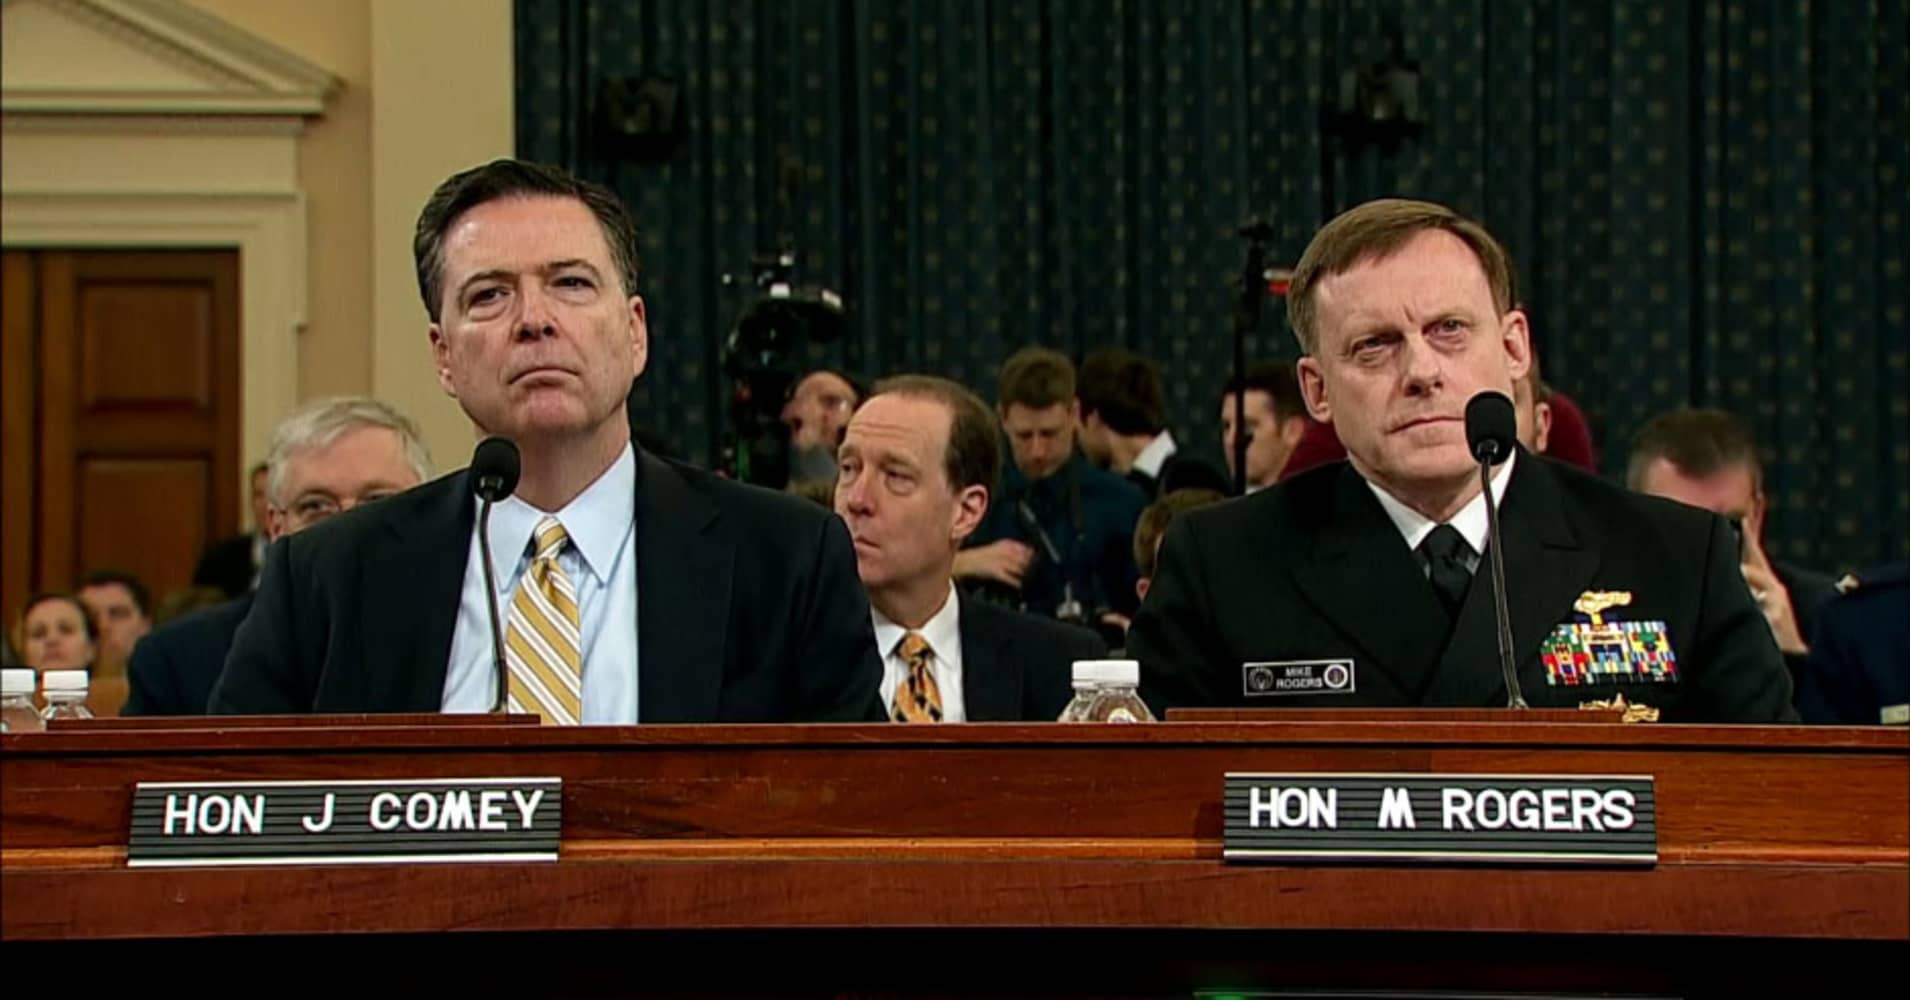 Image result for photos of comey and rogers